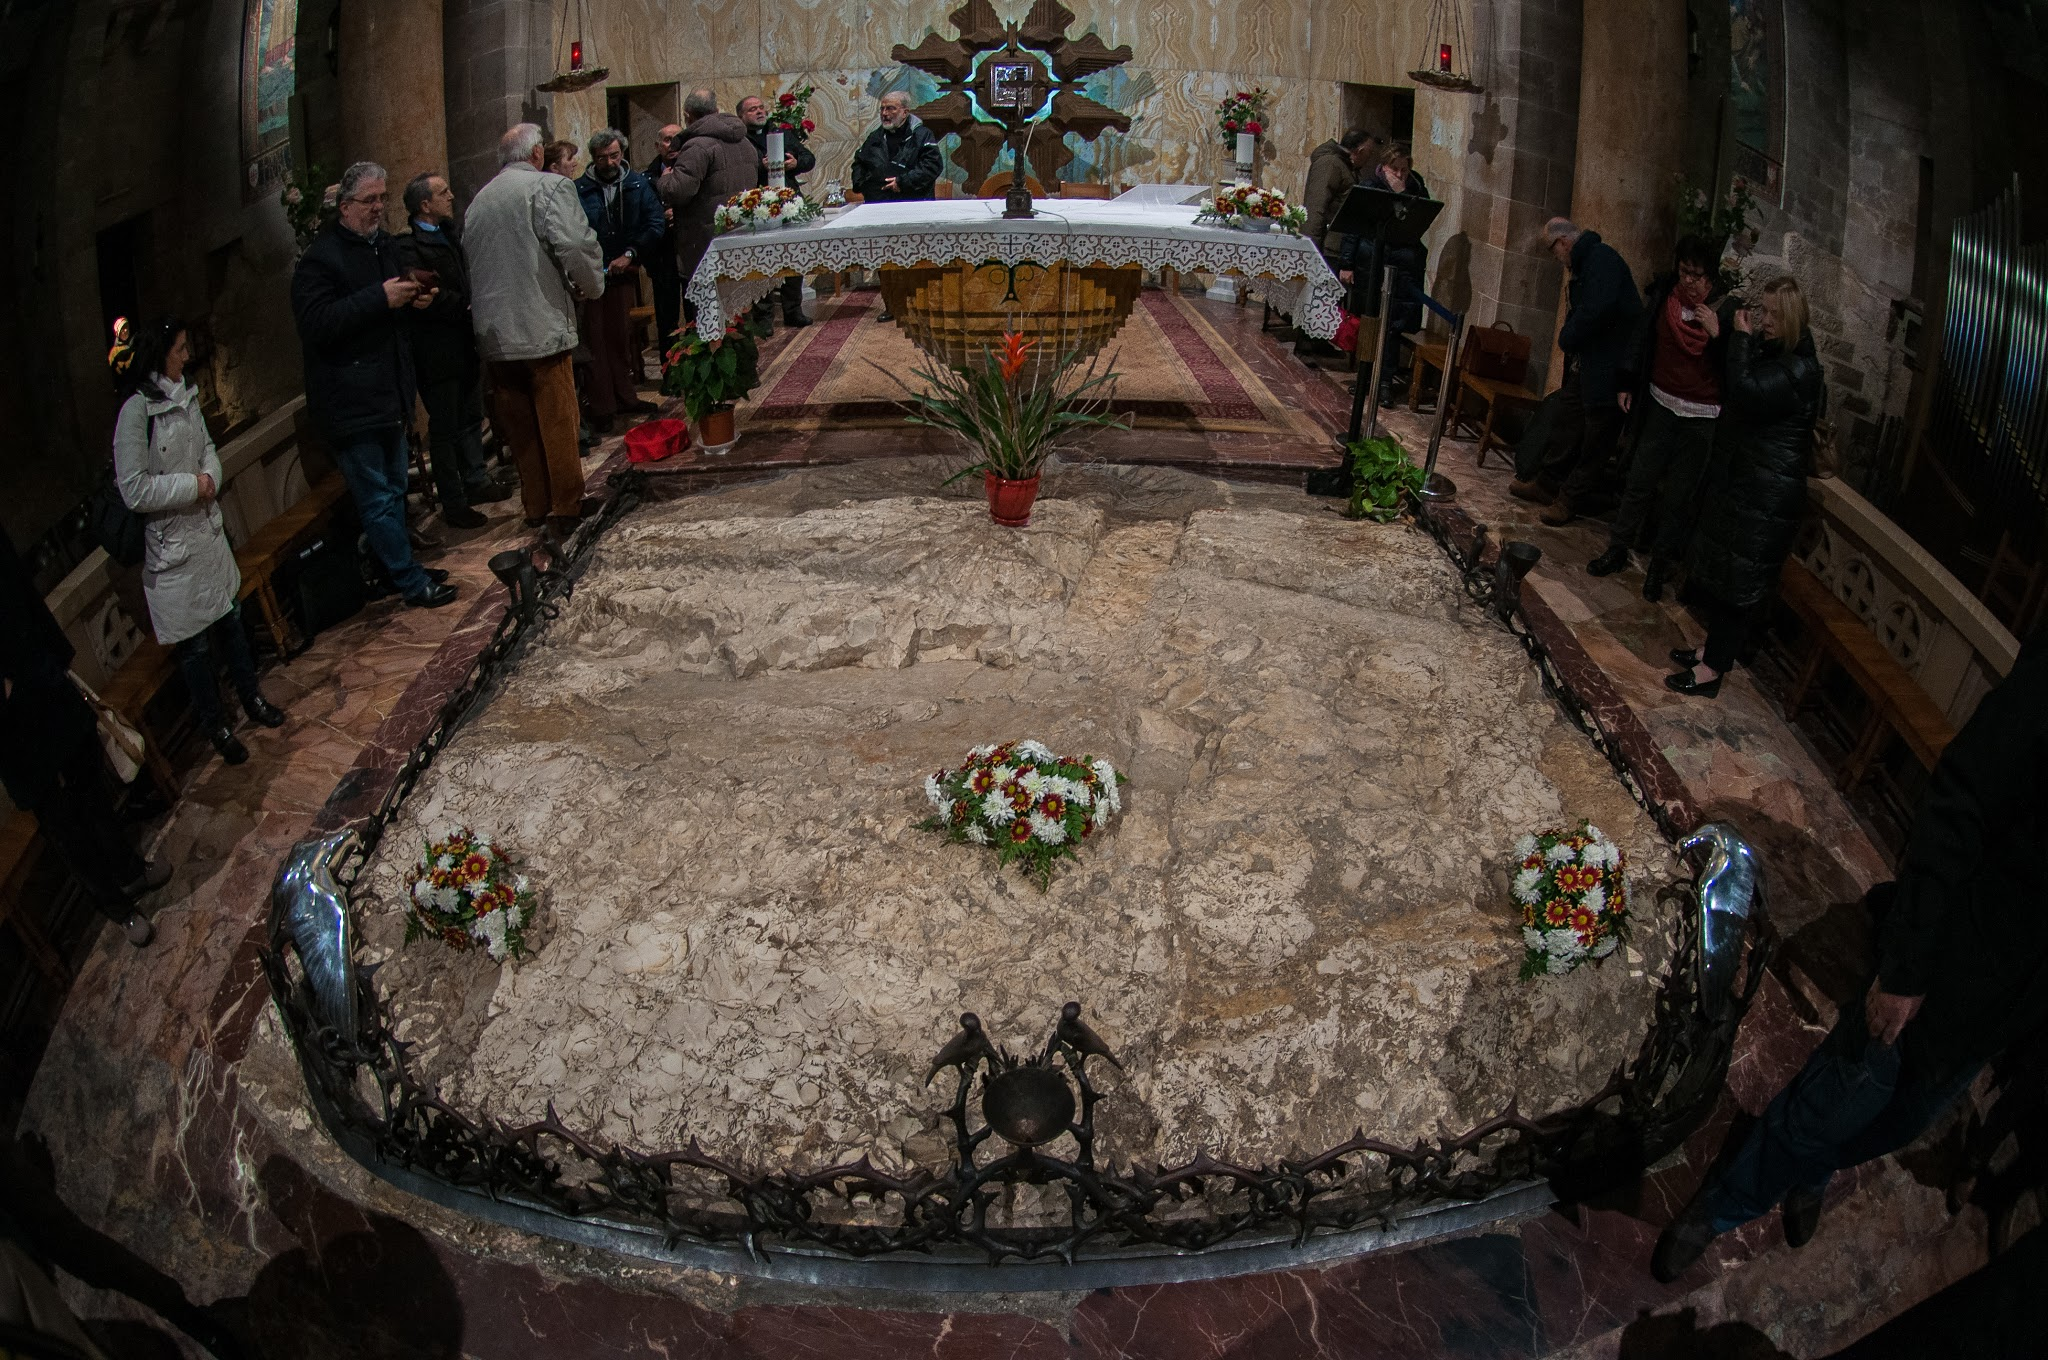 This is thought to be the rock where Jesus sweat blood.